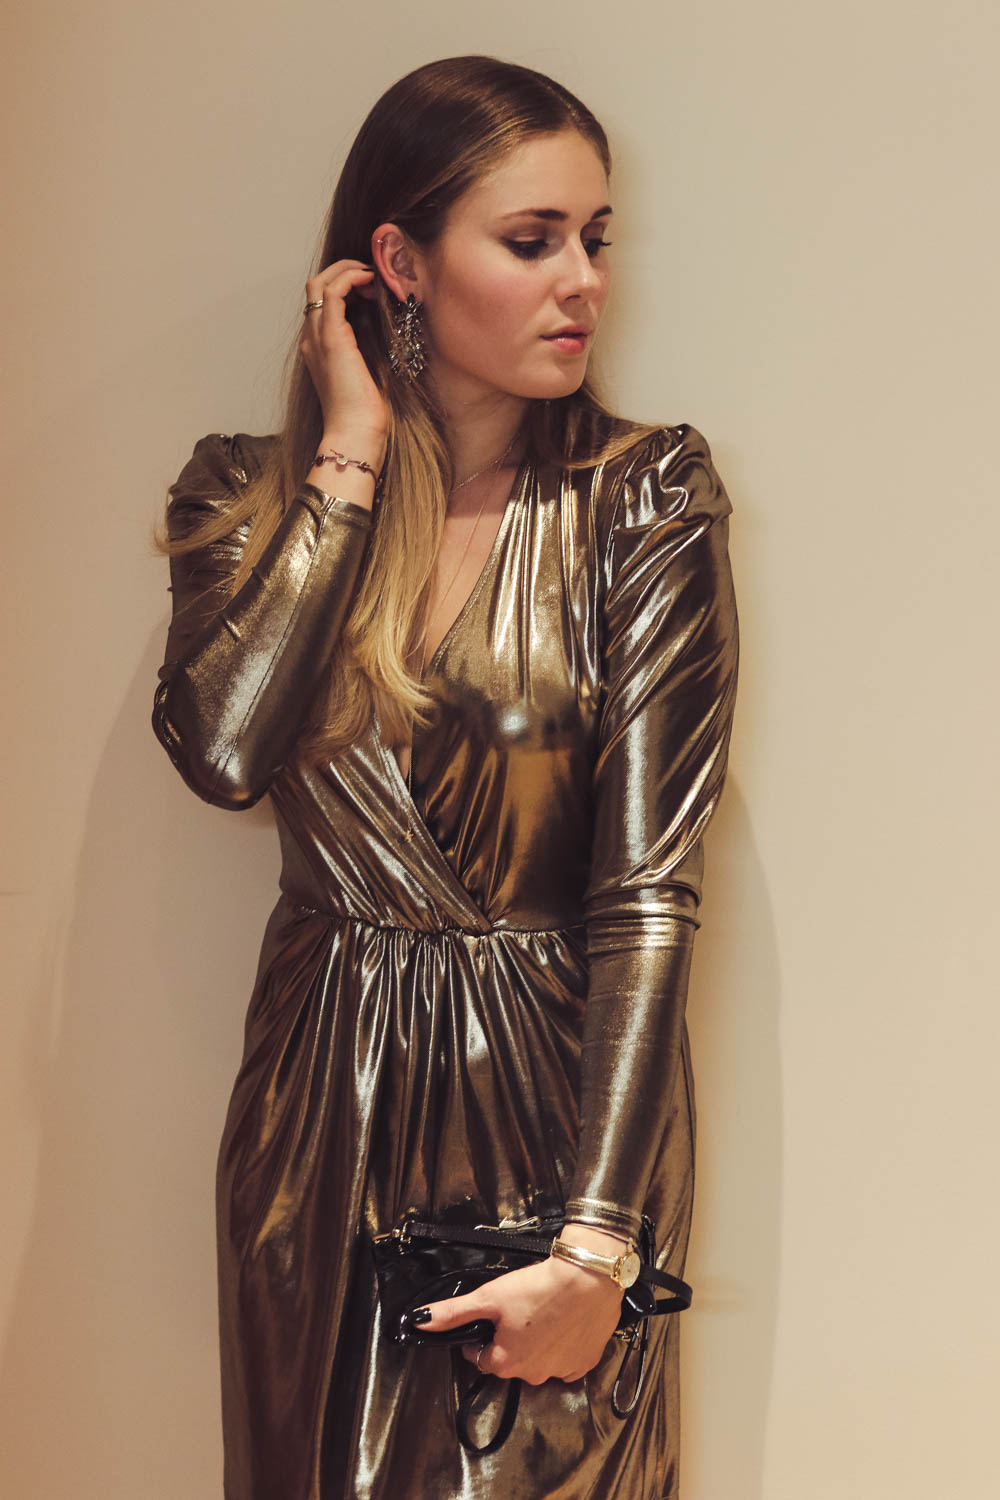 Outfit: Metallic Dress for Silvester auf dem österreichischen Lifestyle Blog Bits and Bobs by Eva